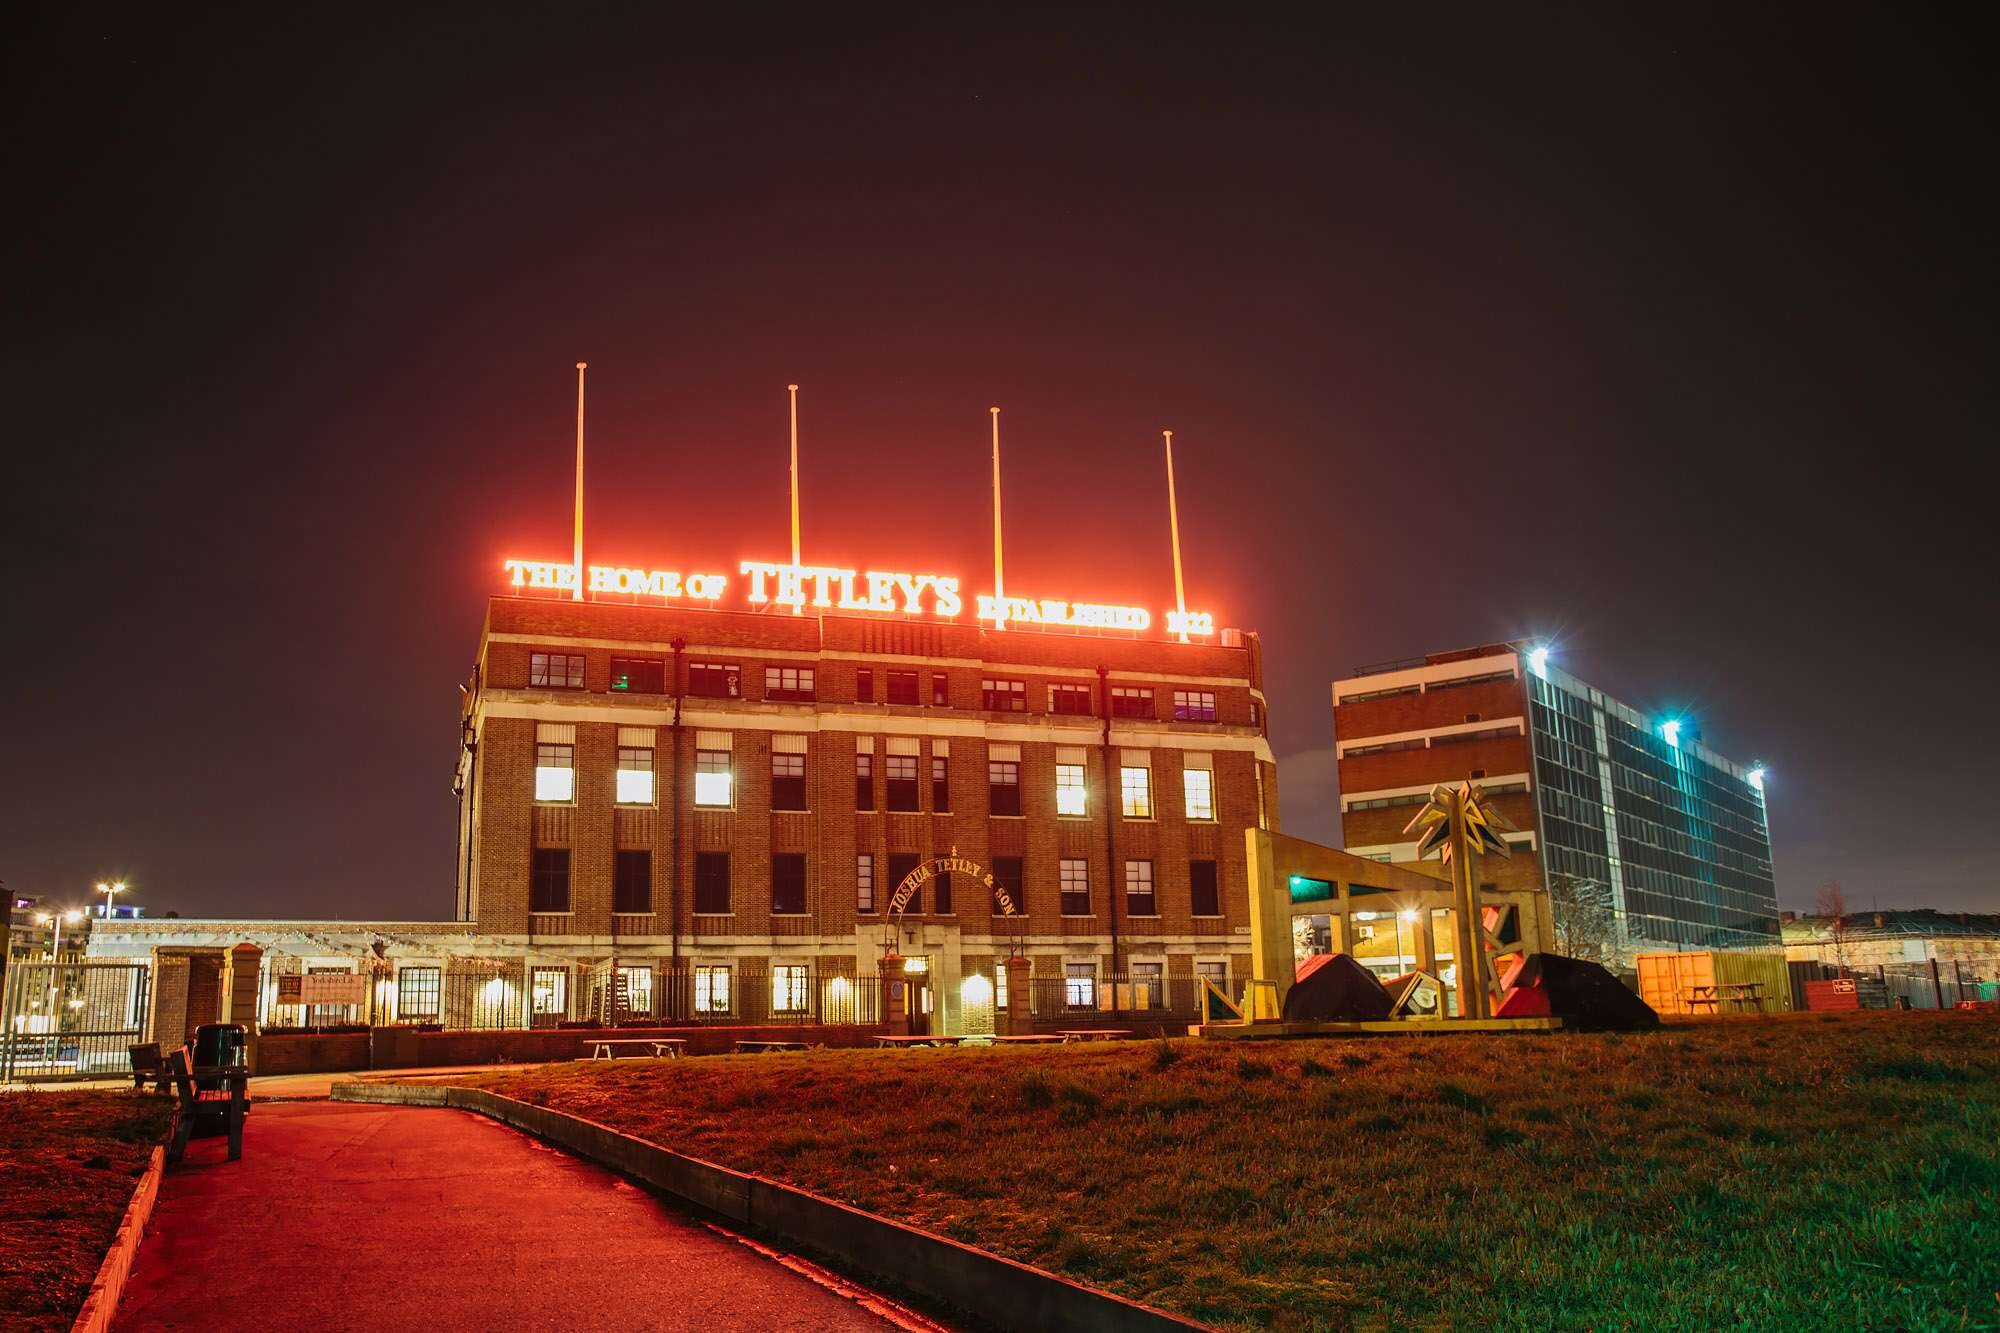 Night time shot of The Tetley Leeds exterior